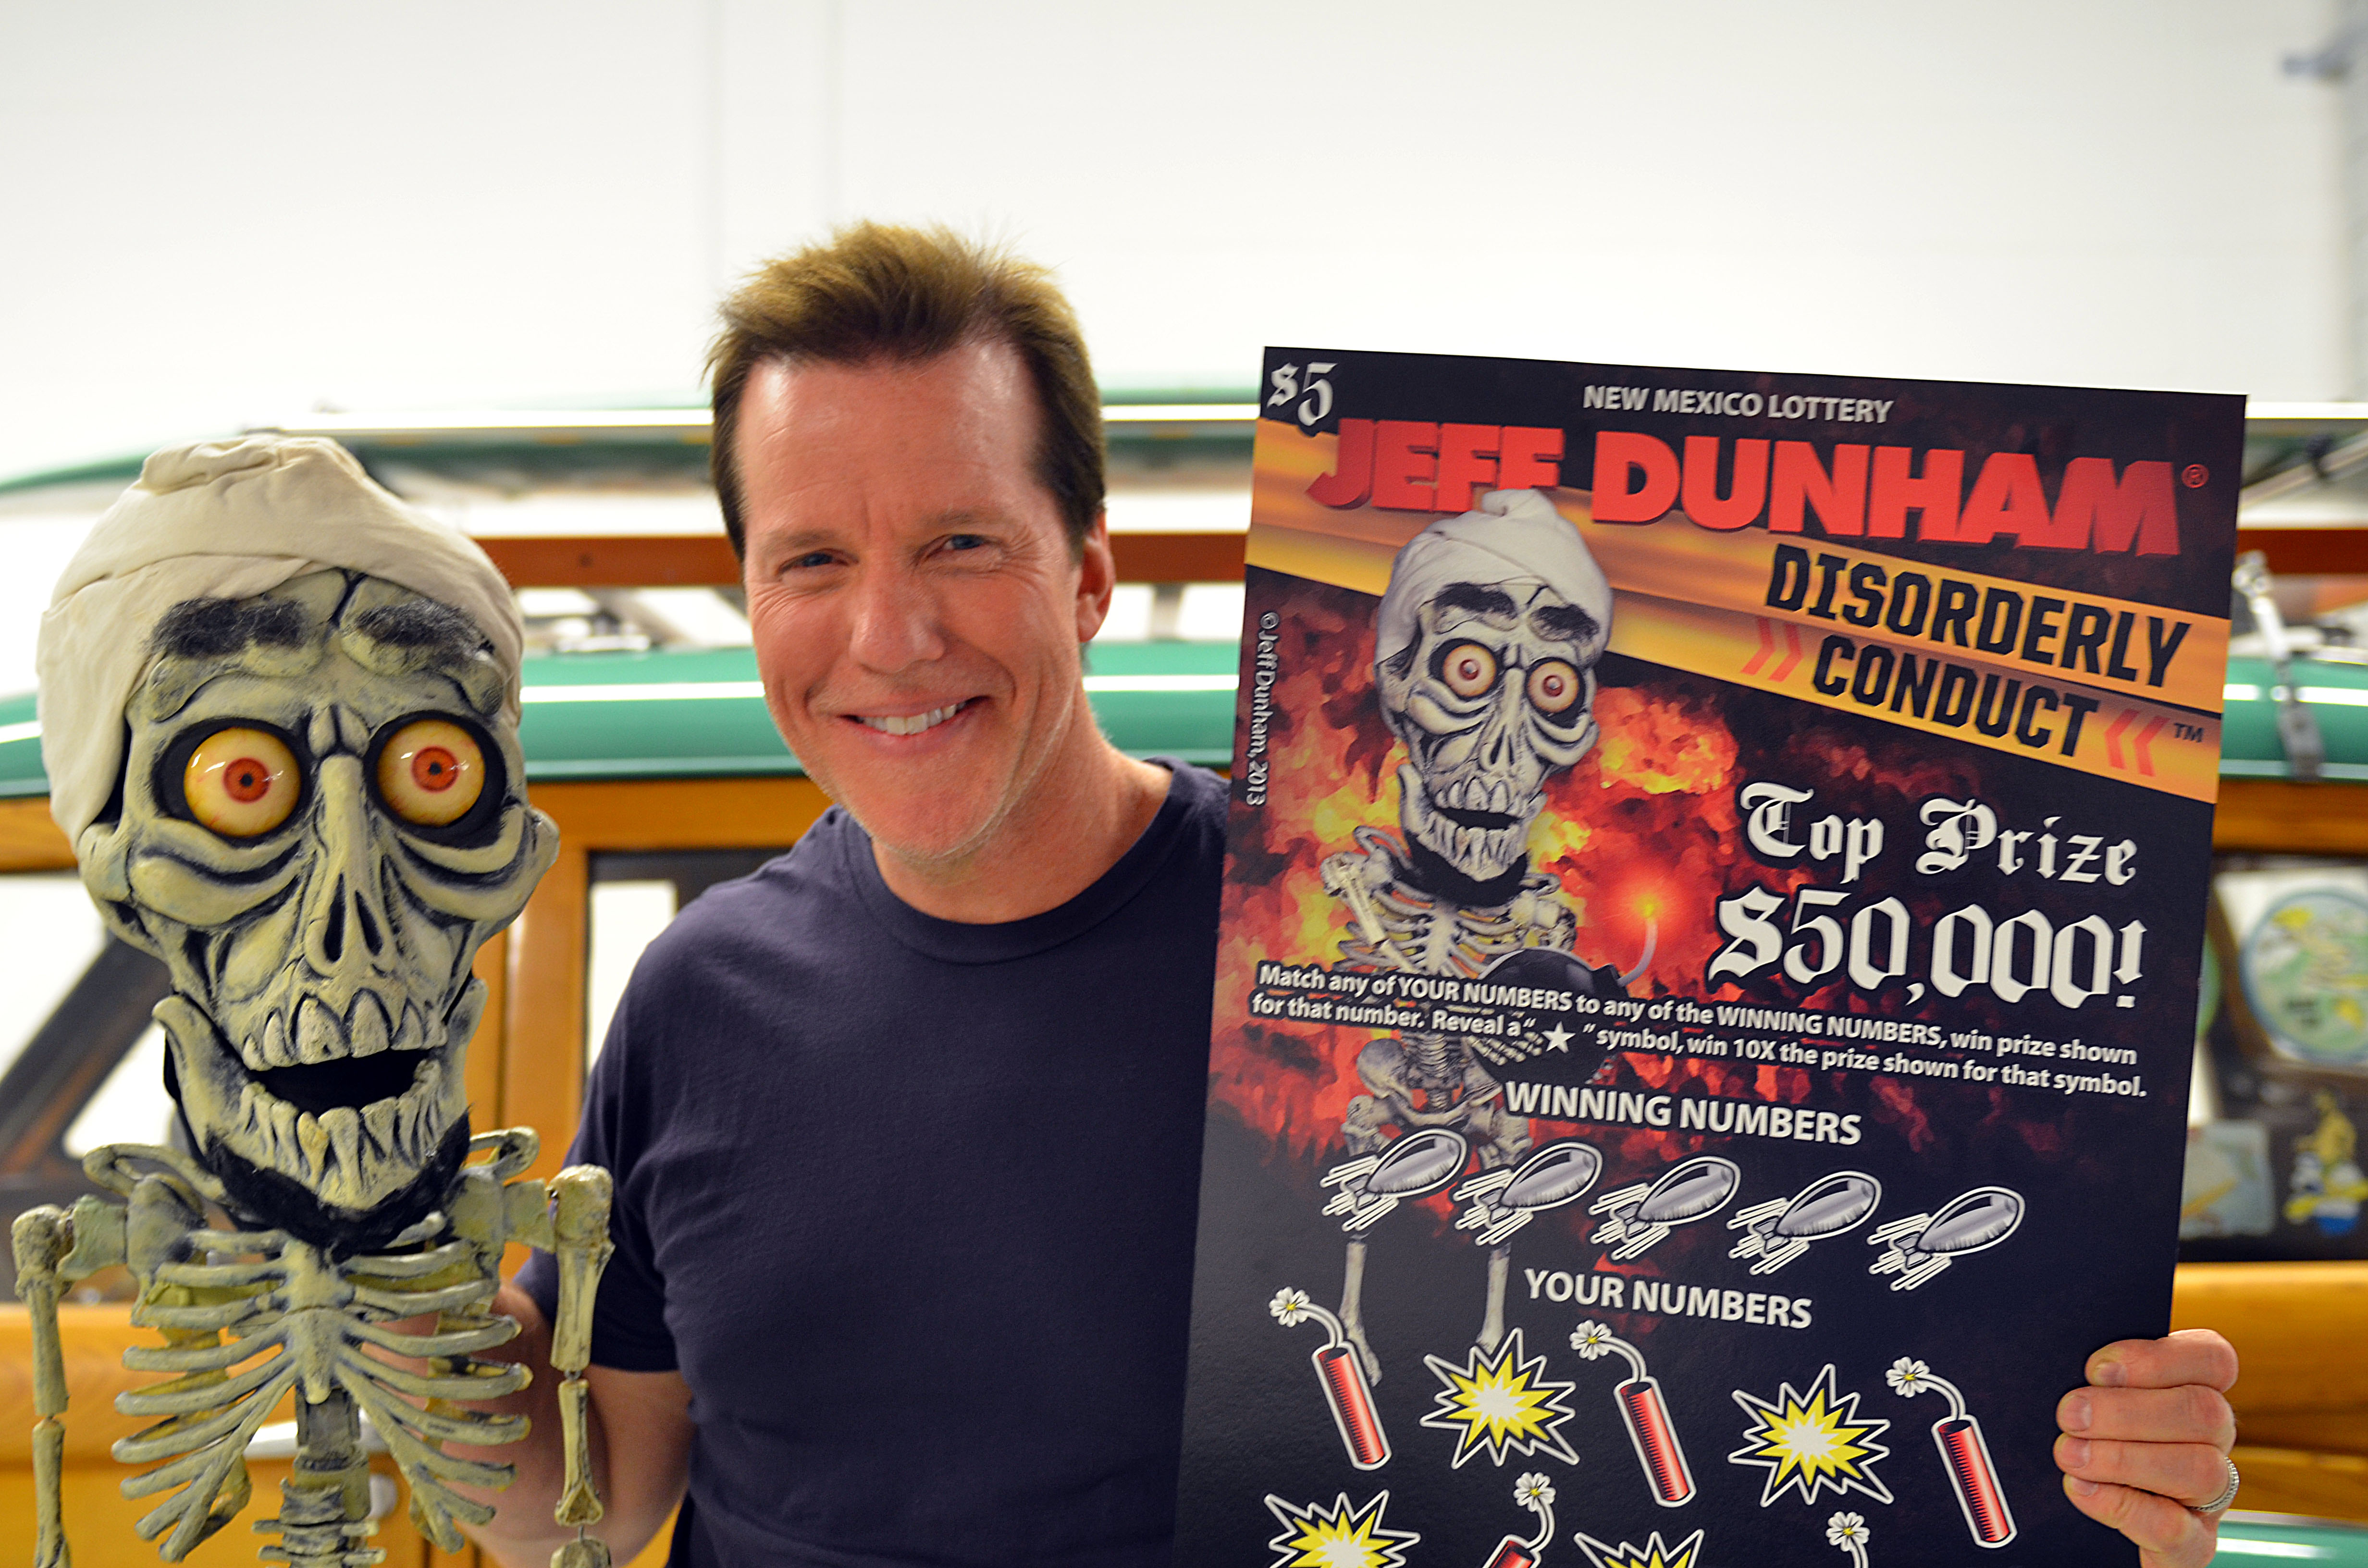 Courtesy of New Mexico Lottery Comedian Jeff Dunham, center, has teamed up with the New Mexico Lottery for a scratcher that features a few of his characters. agomez@abqjournal.com Mon Nov 18 14:36:36 -0700 2013 1384810591 FILENAME: 162601.jpg